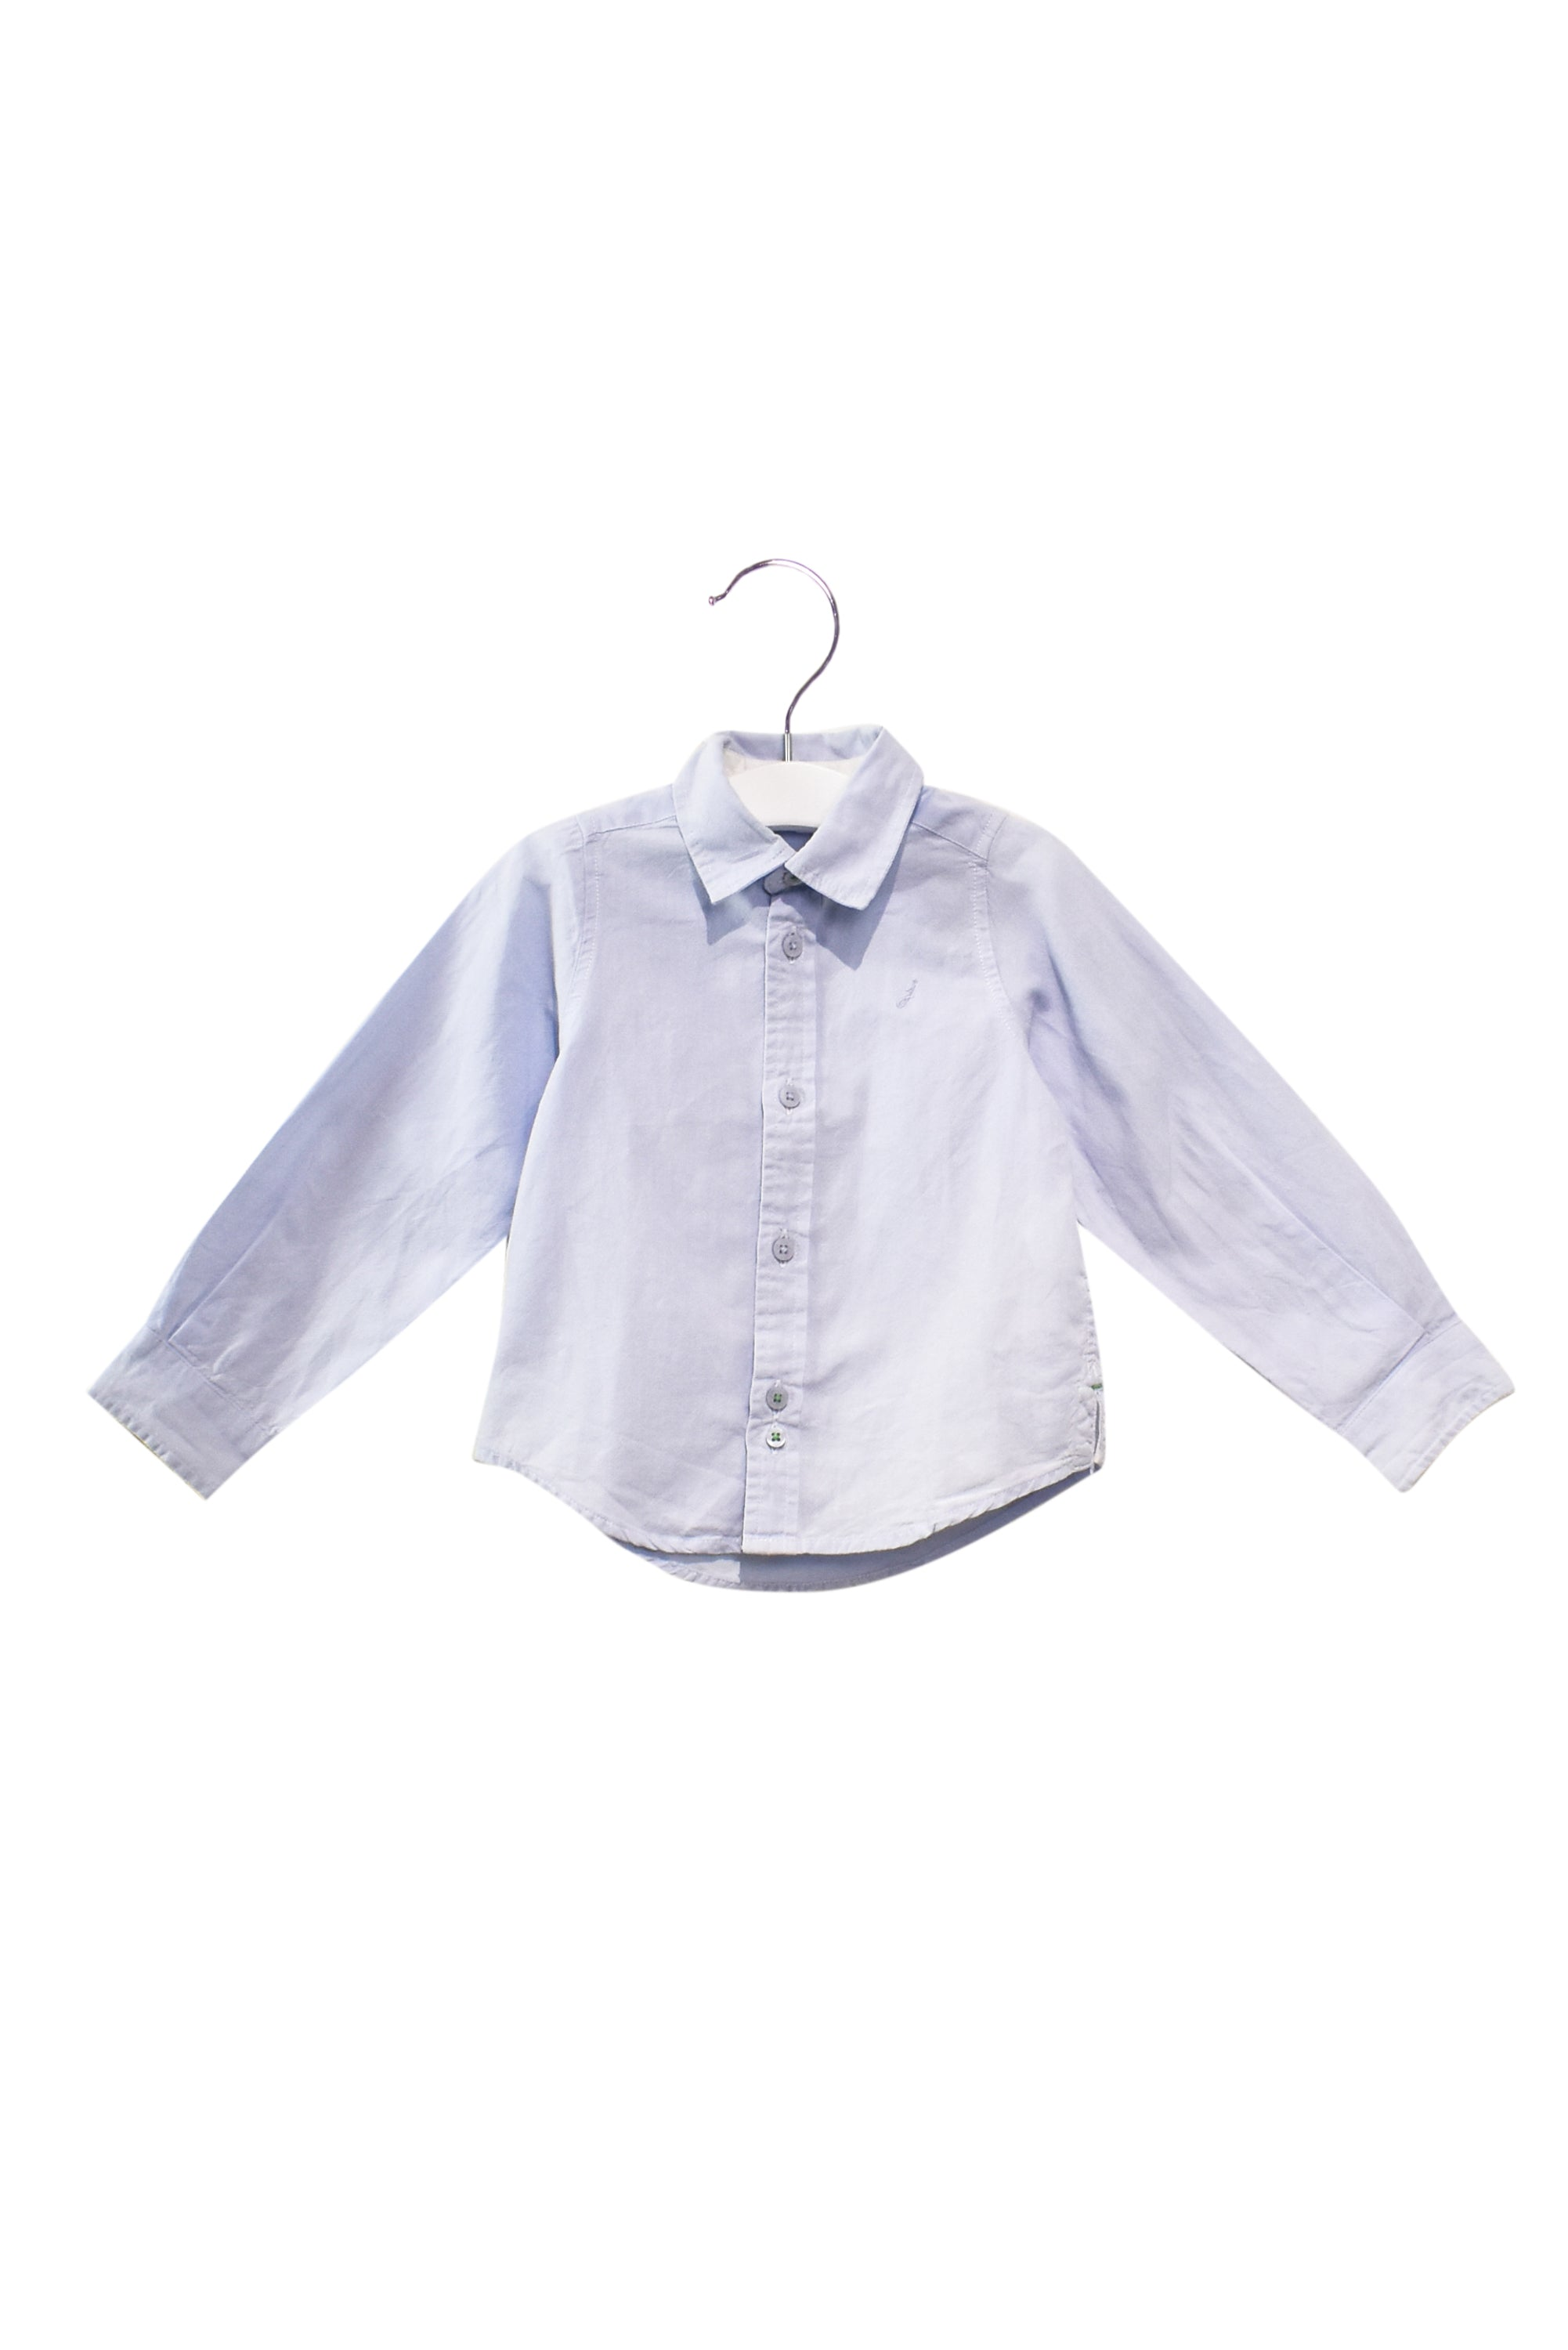 10028018 Jacadi Kids~Shirt 2T at Retykle